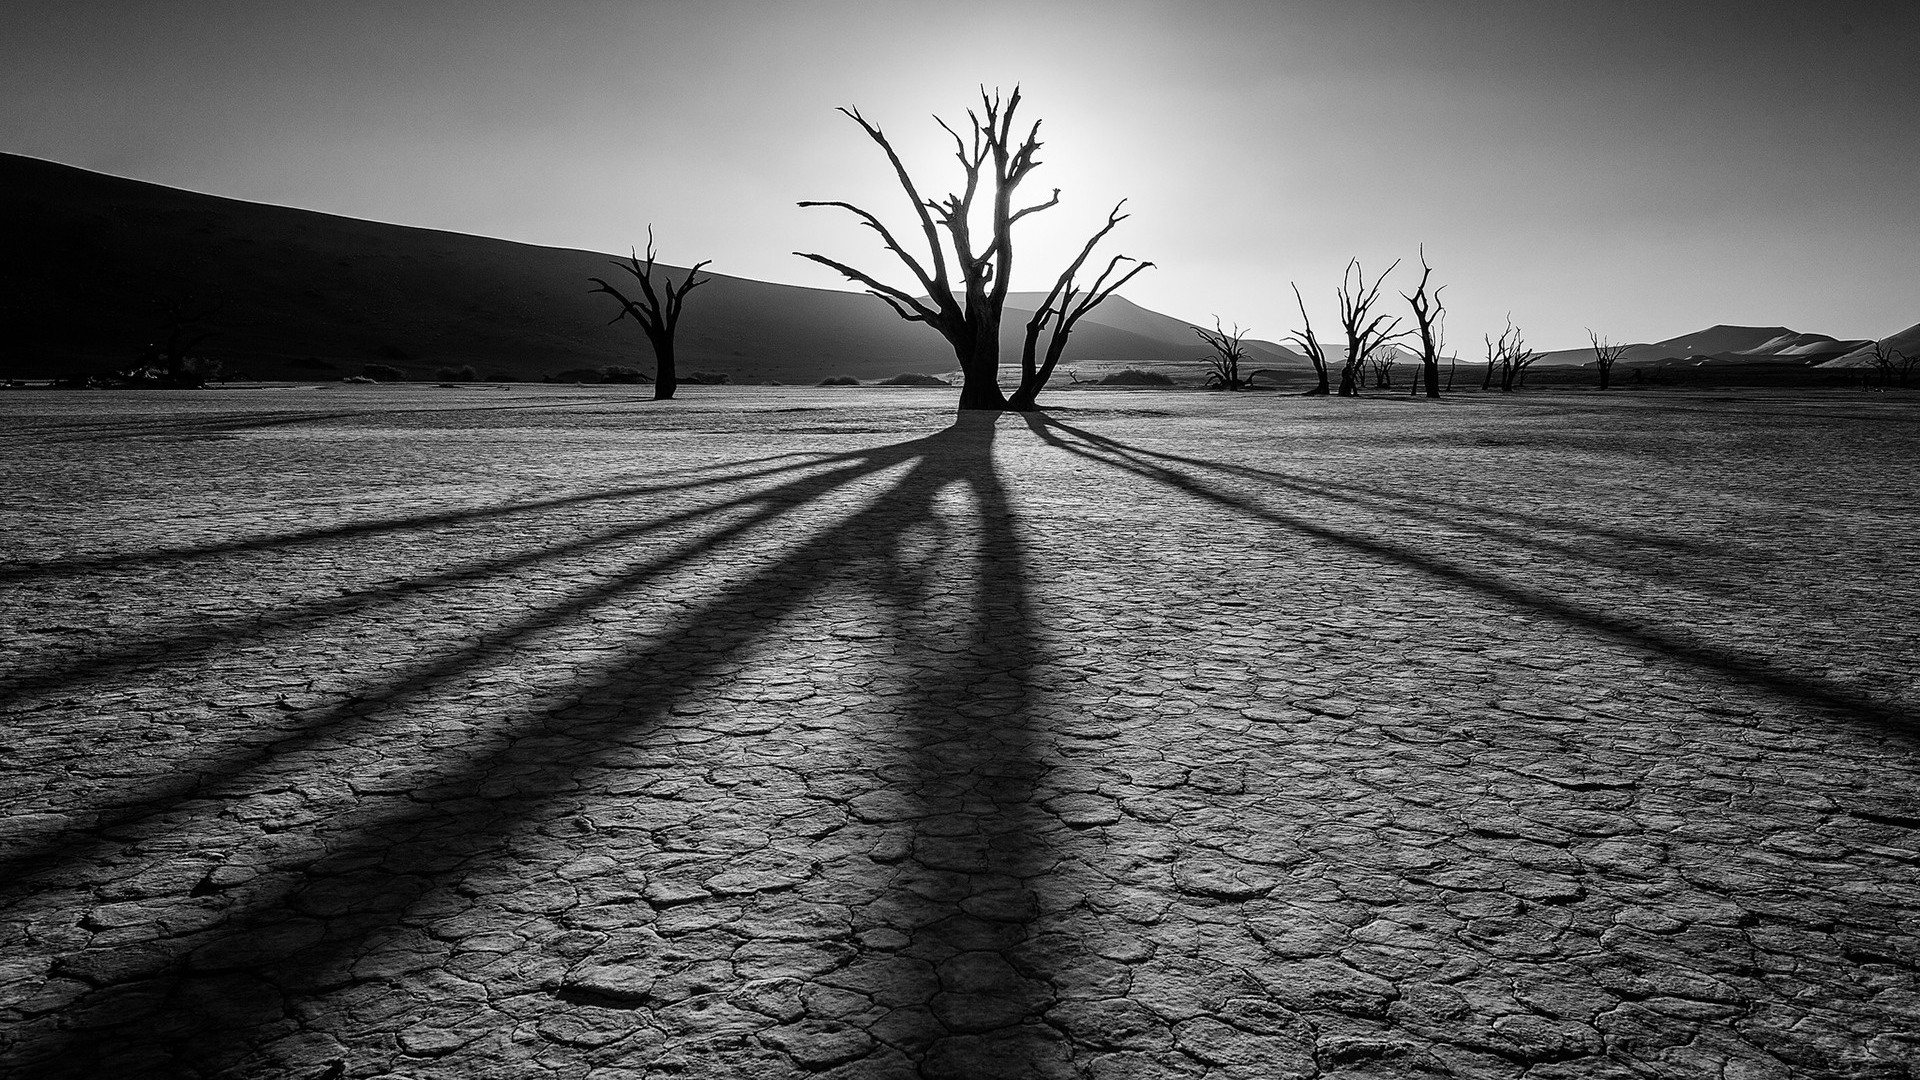 Res: 1920x1080, Black and White, Sky, Atmosphere, Woody Plant, Oasis HD Wallpaper, Nature  Picture, Background and Image